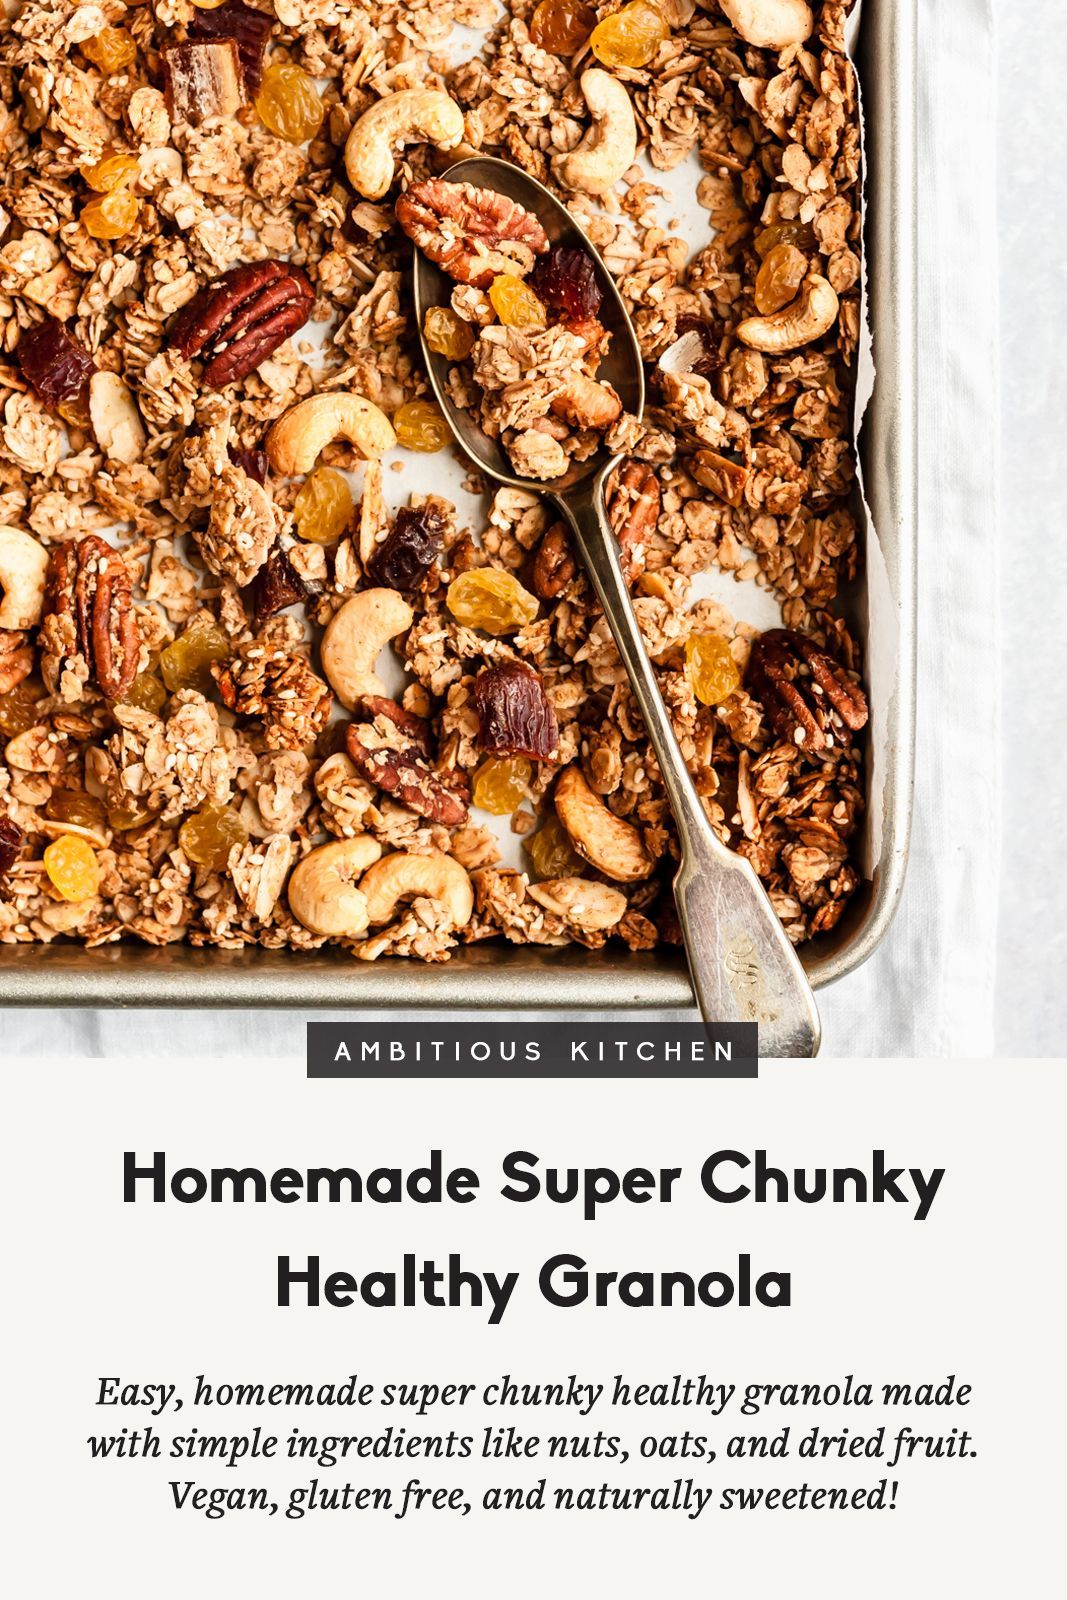 Wholesome Granola Recipe (vegan & gluten free!) | Bold Kitchen #flaxseedmealrecipes